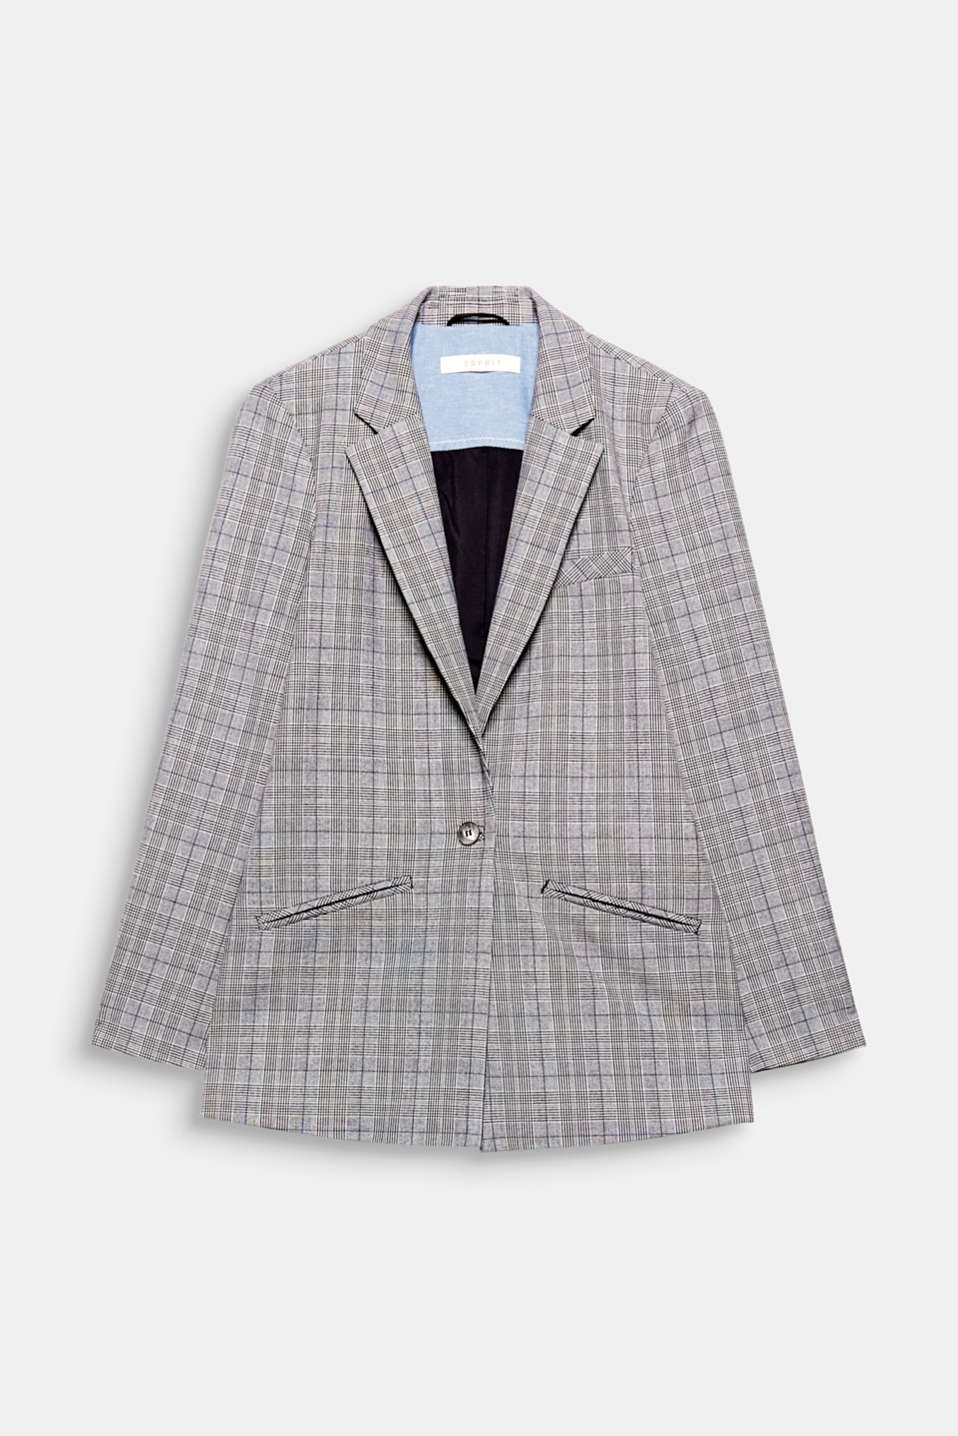 This fitted one-button blazer with an androgynous Prince of Wales check pattern looks both chic and casual.